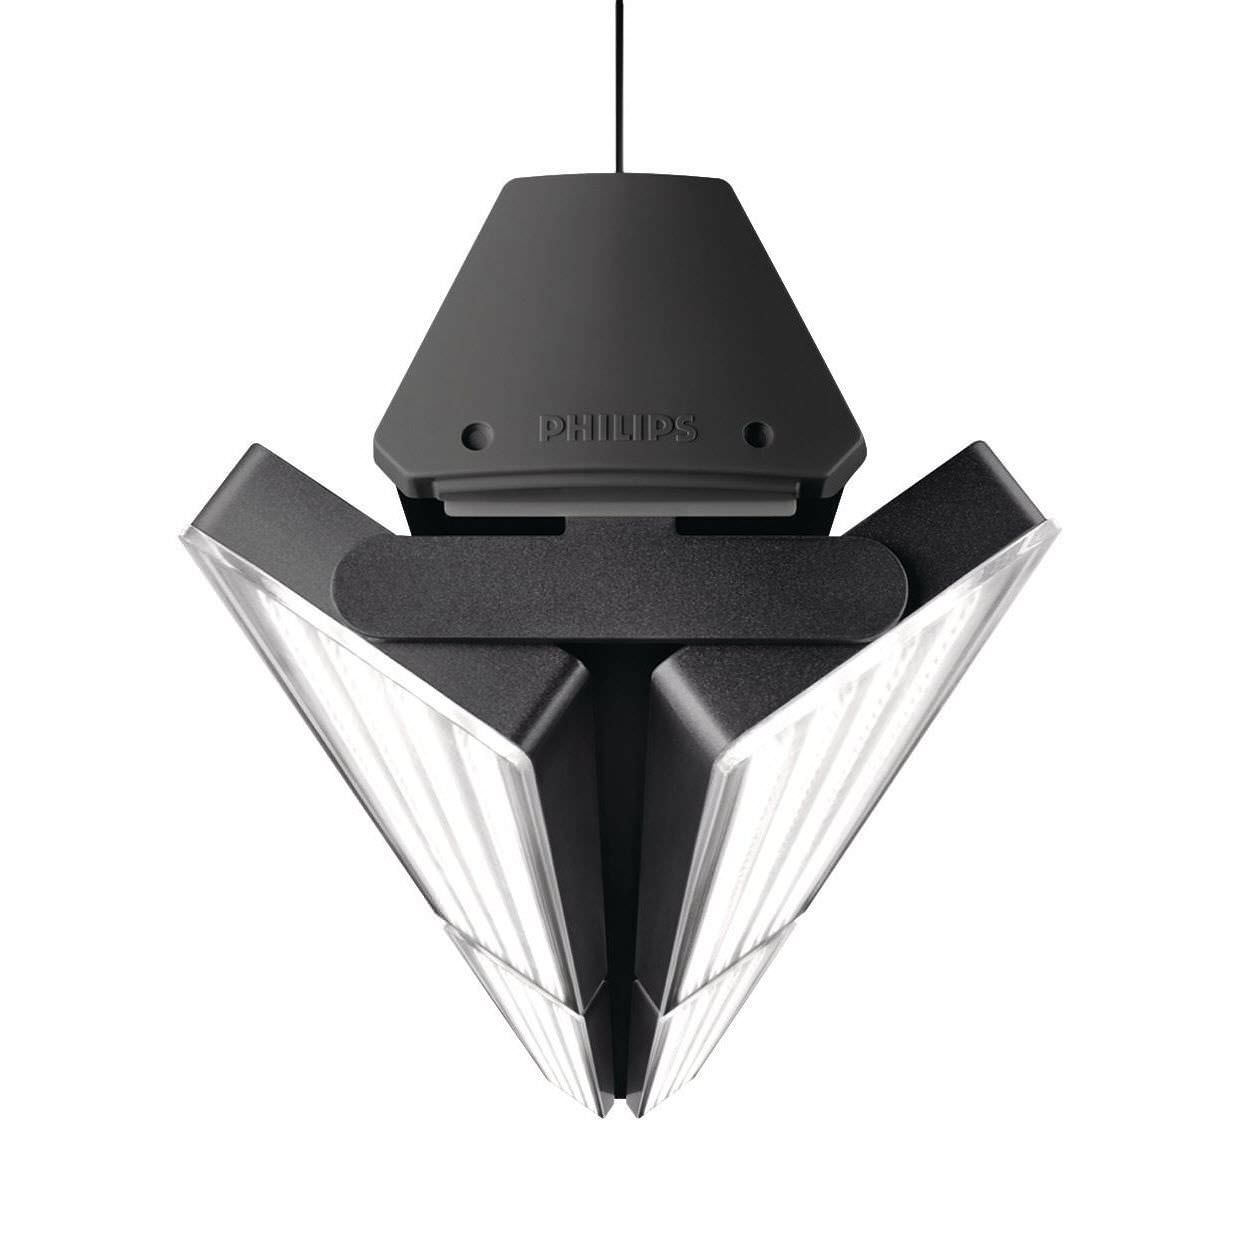 Hanging light fixture led linear modular lighting system discover all the information about the product hanging light fixture led linear sheet metal maxos fusion philips lighting and find where you can buy arubaitofo Gallery